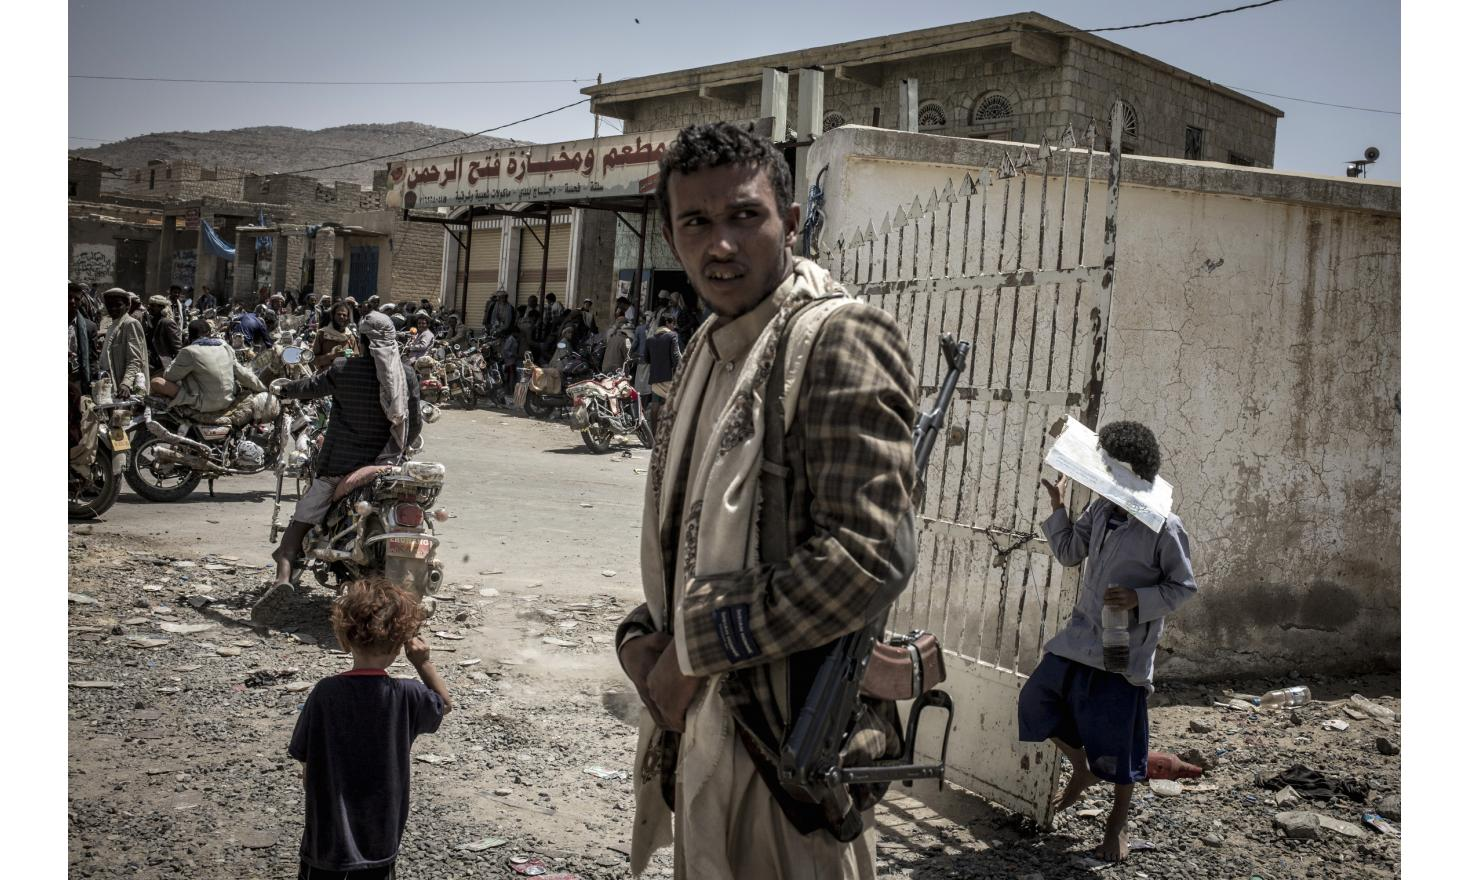 Houthis in